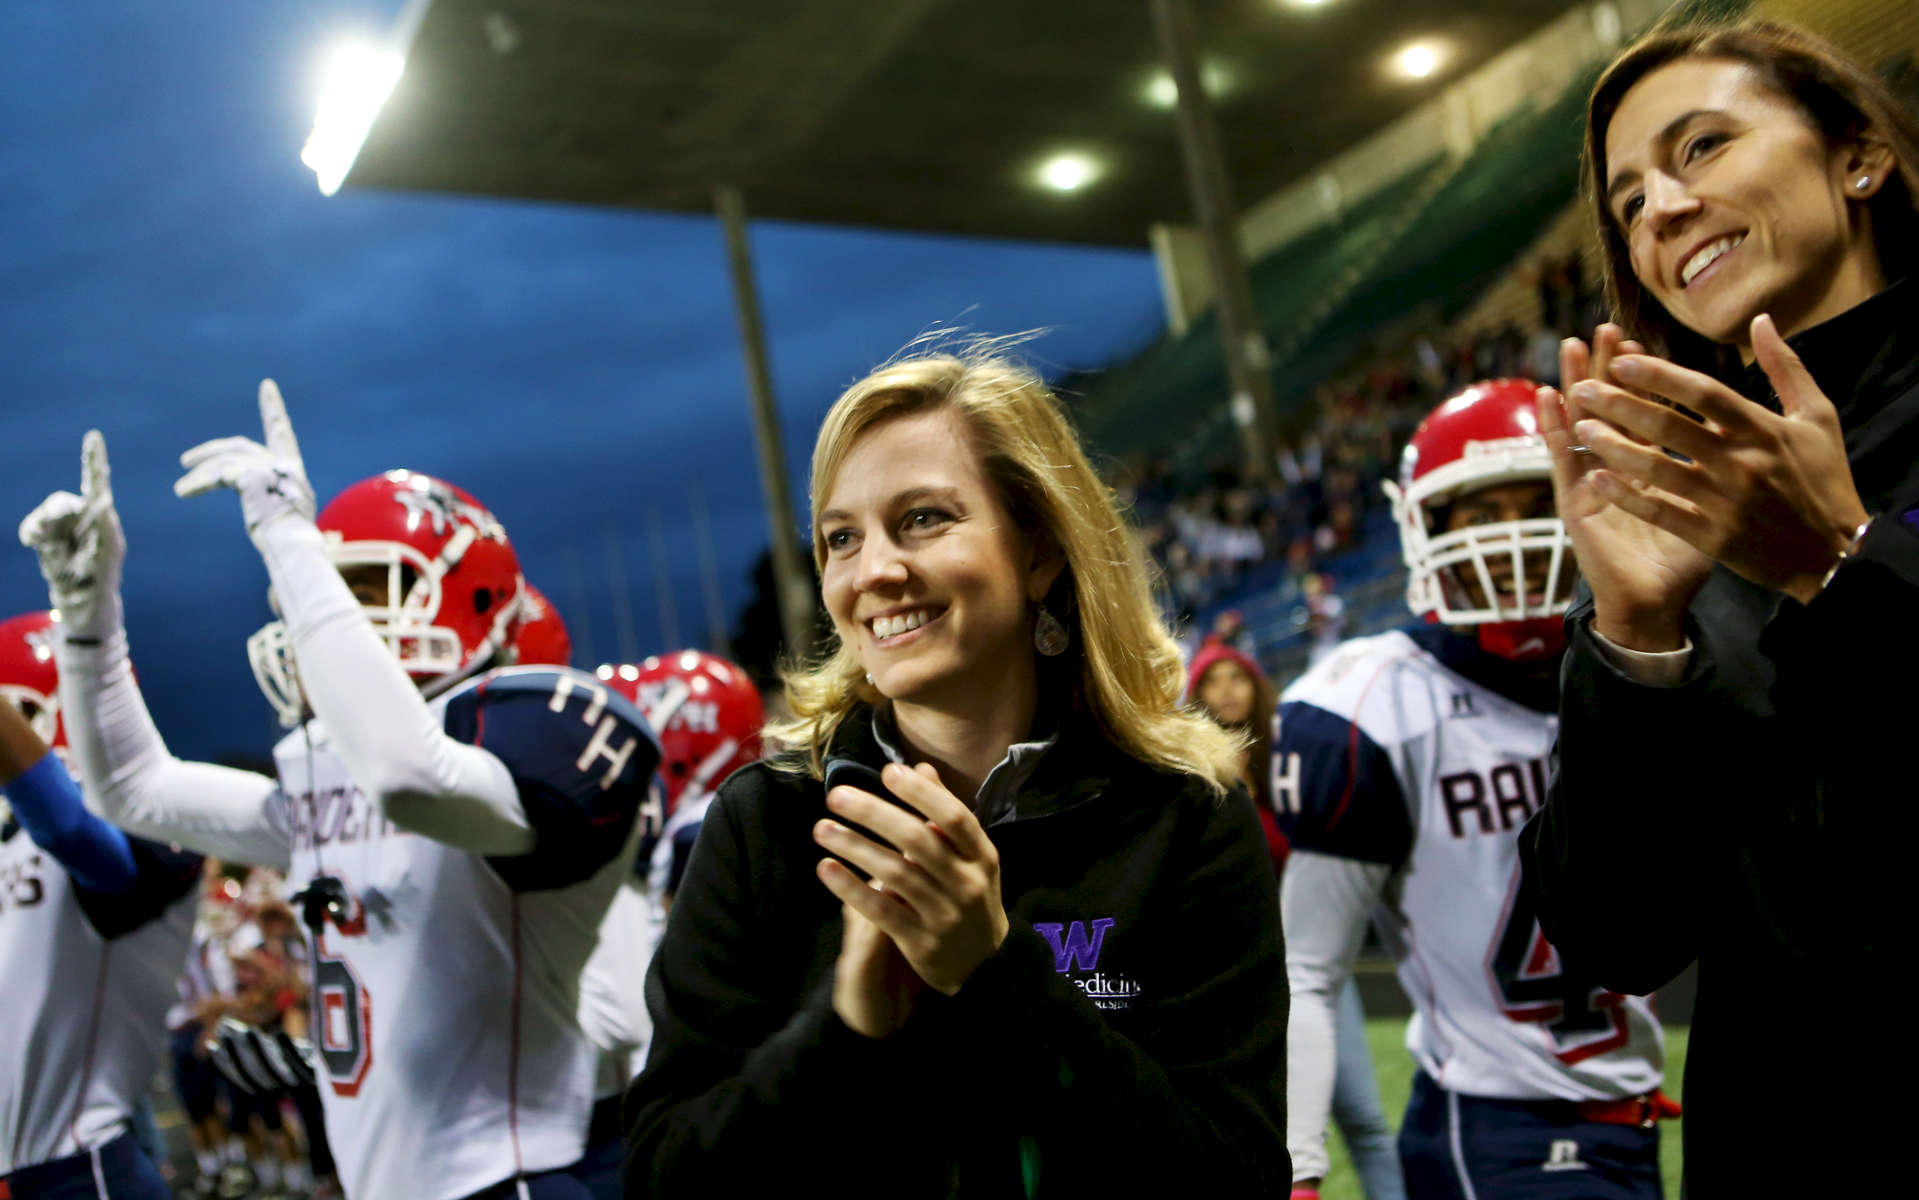 Click here to view story; Under Friday night lights, she helped Raiders stay scrappy